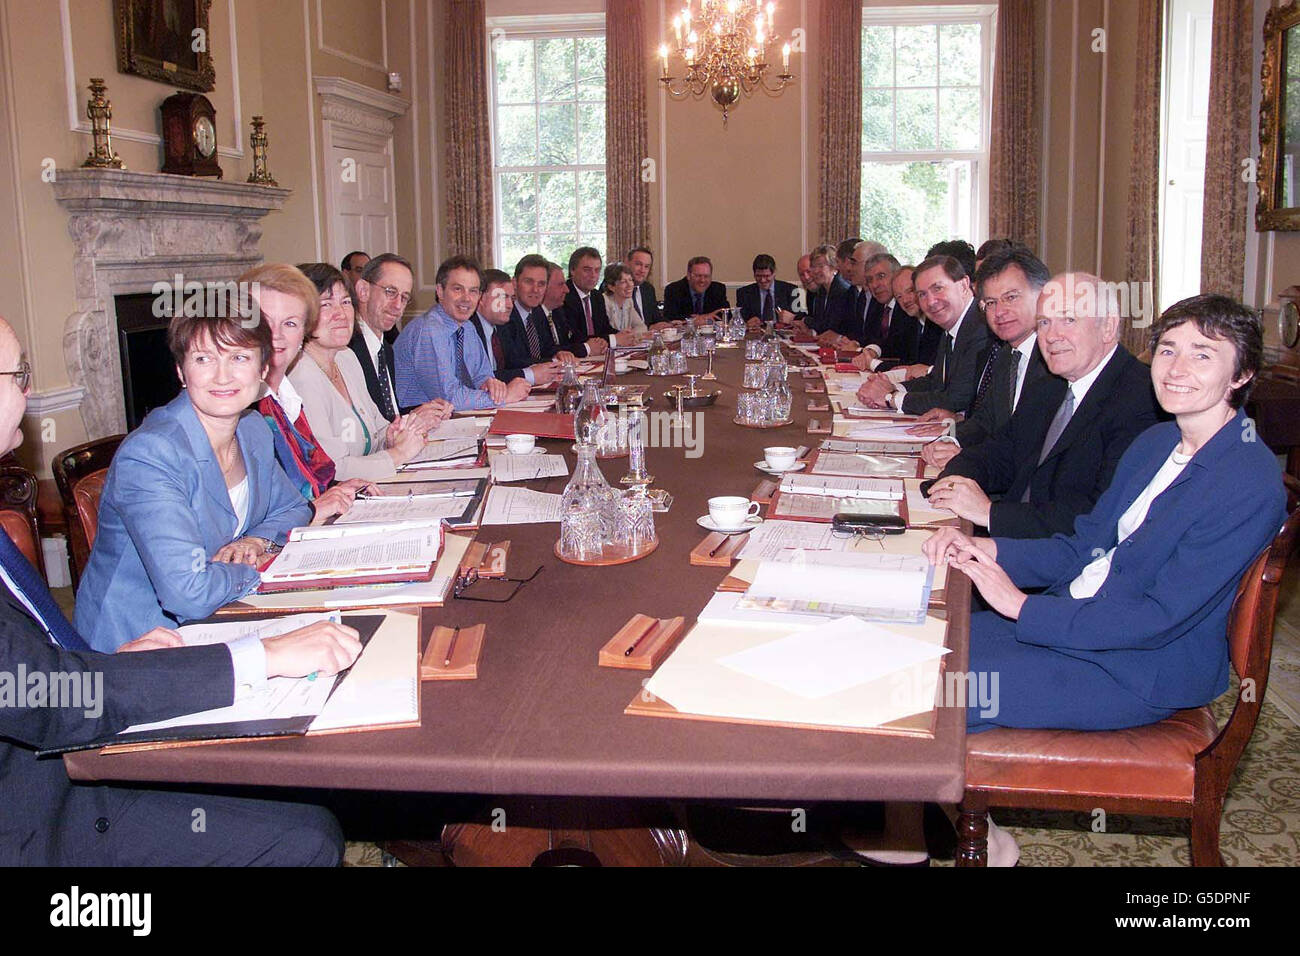 Blair's New Government Cabinet Stock Photo, Royalty Free Image ...